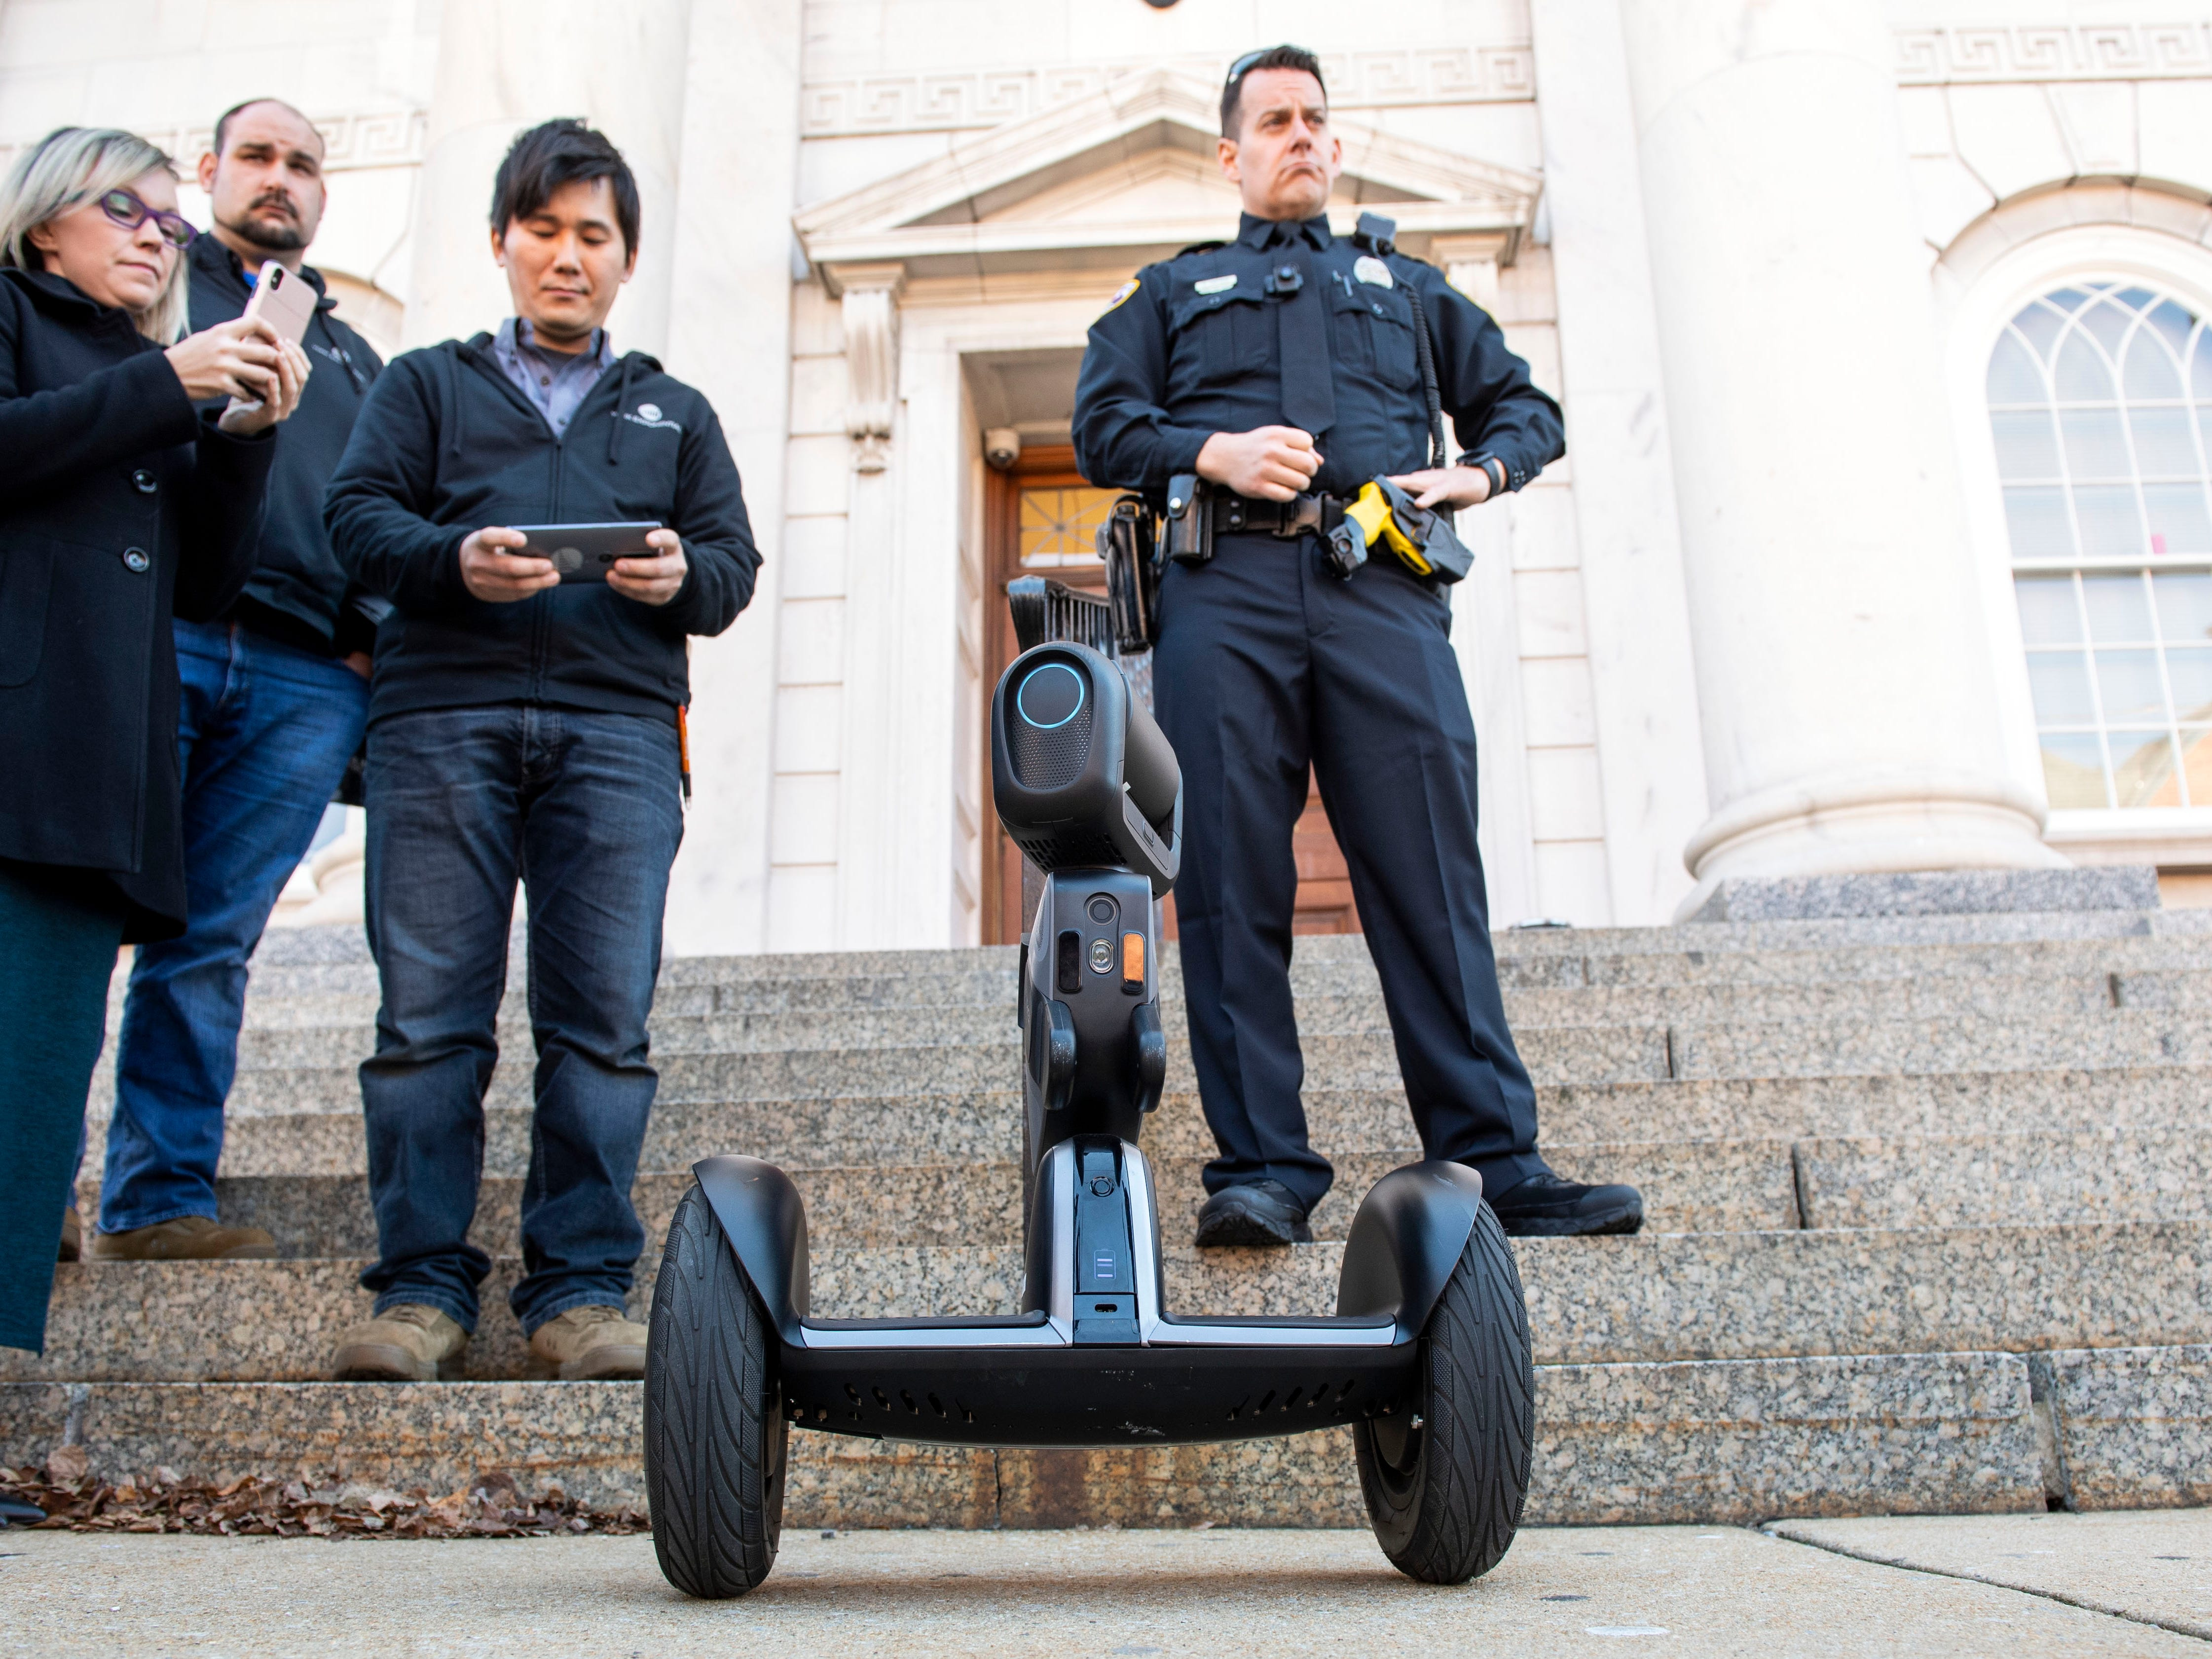 During a demonstration of the 'Loomo' Ñ a two-wheeled robot Ñ officer Derek Hartman, right, listens to York Exponential CEO explain features of the robot, Thursday, Nov. 8, 2018.